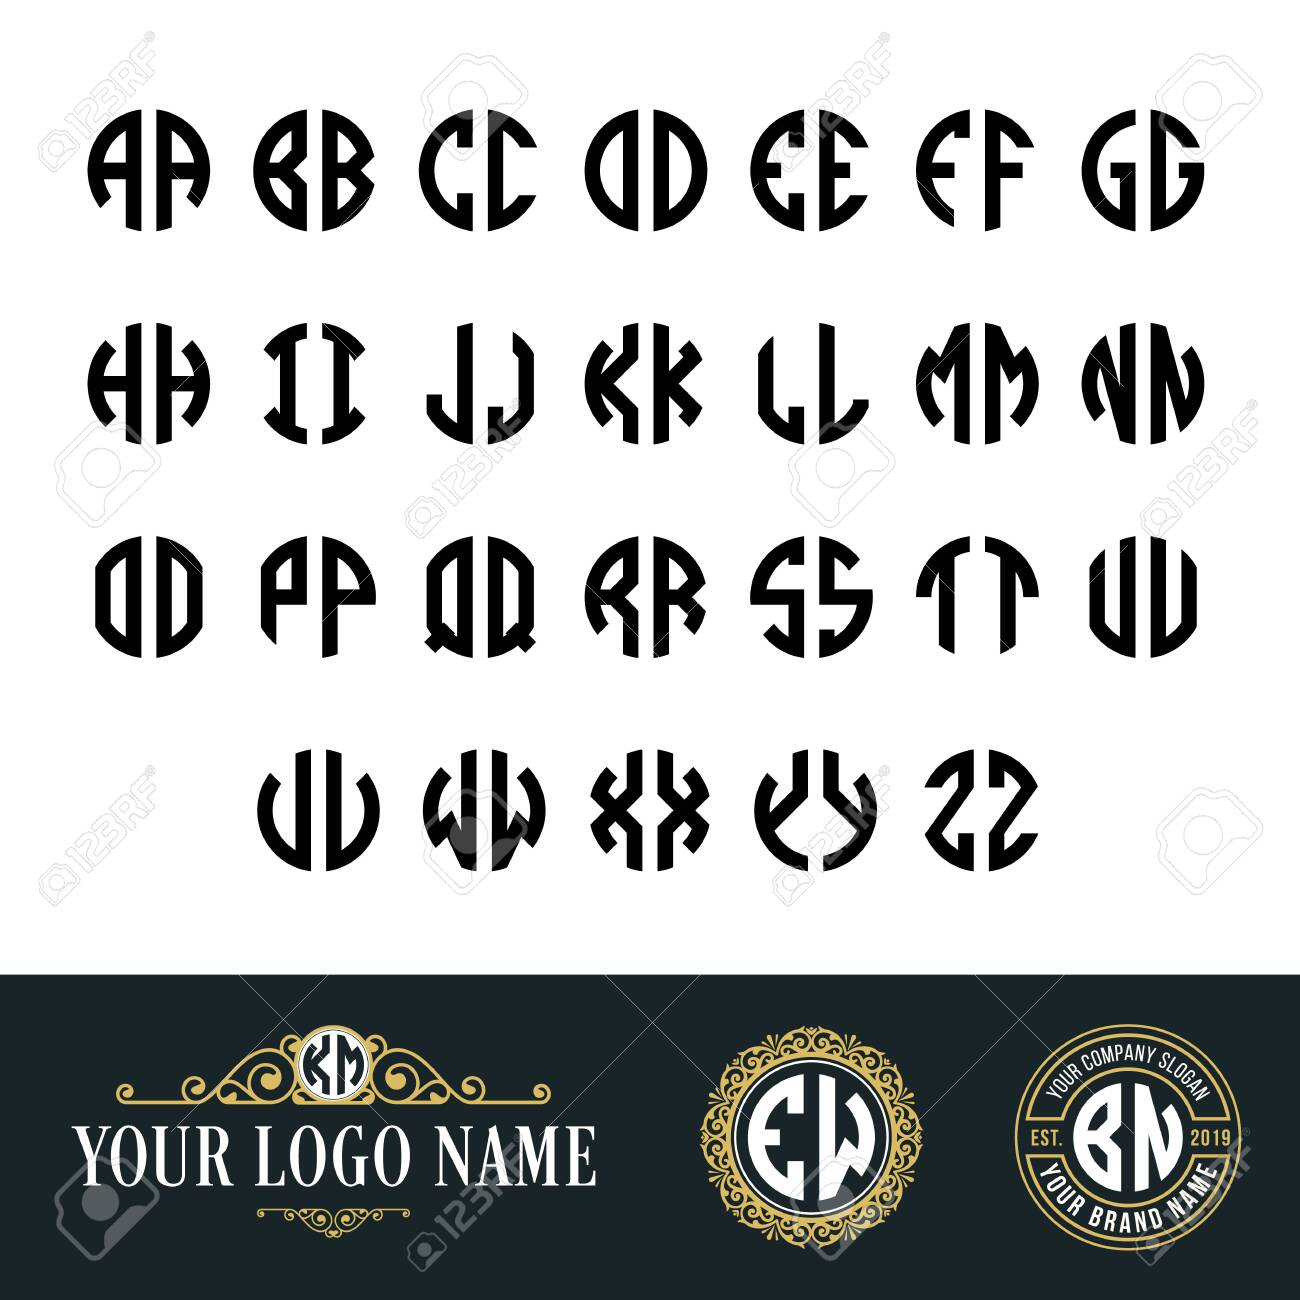 Monogram Circle Font With 2 Letters Suitable As An Initial Logo Royalty Free Cliparts Vectors And Stock Illustration Image 127338141